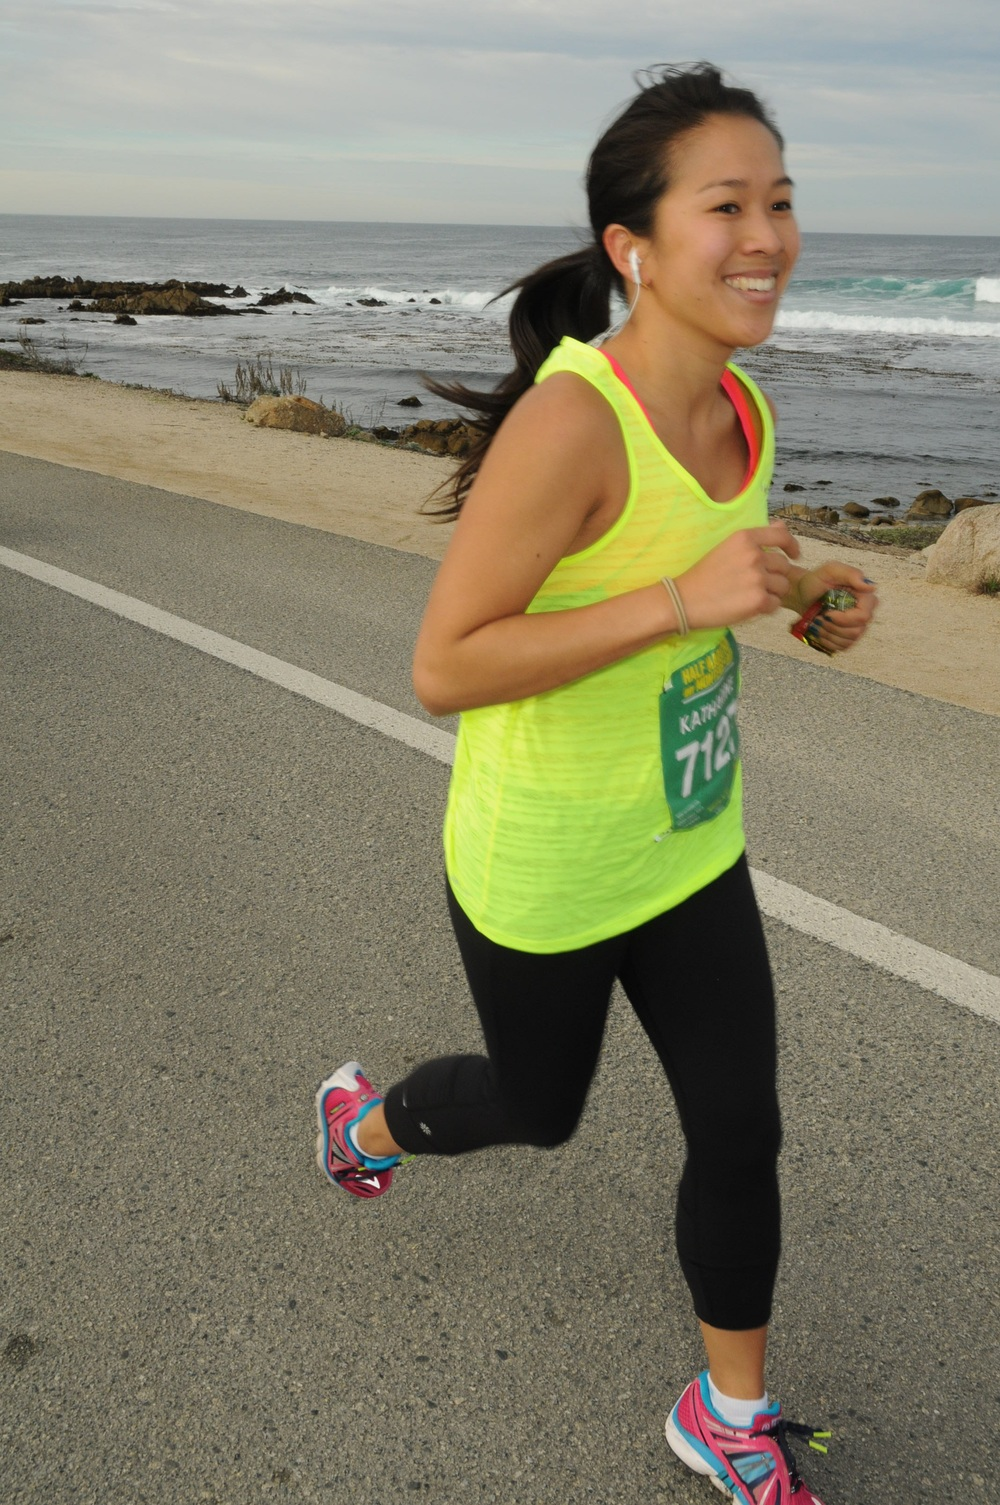 The Big Sur Half Marathon